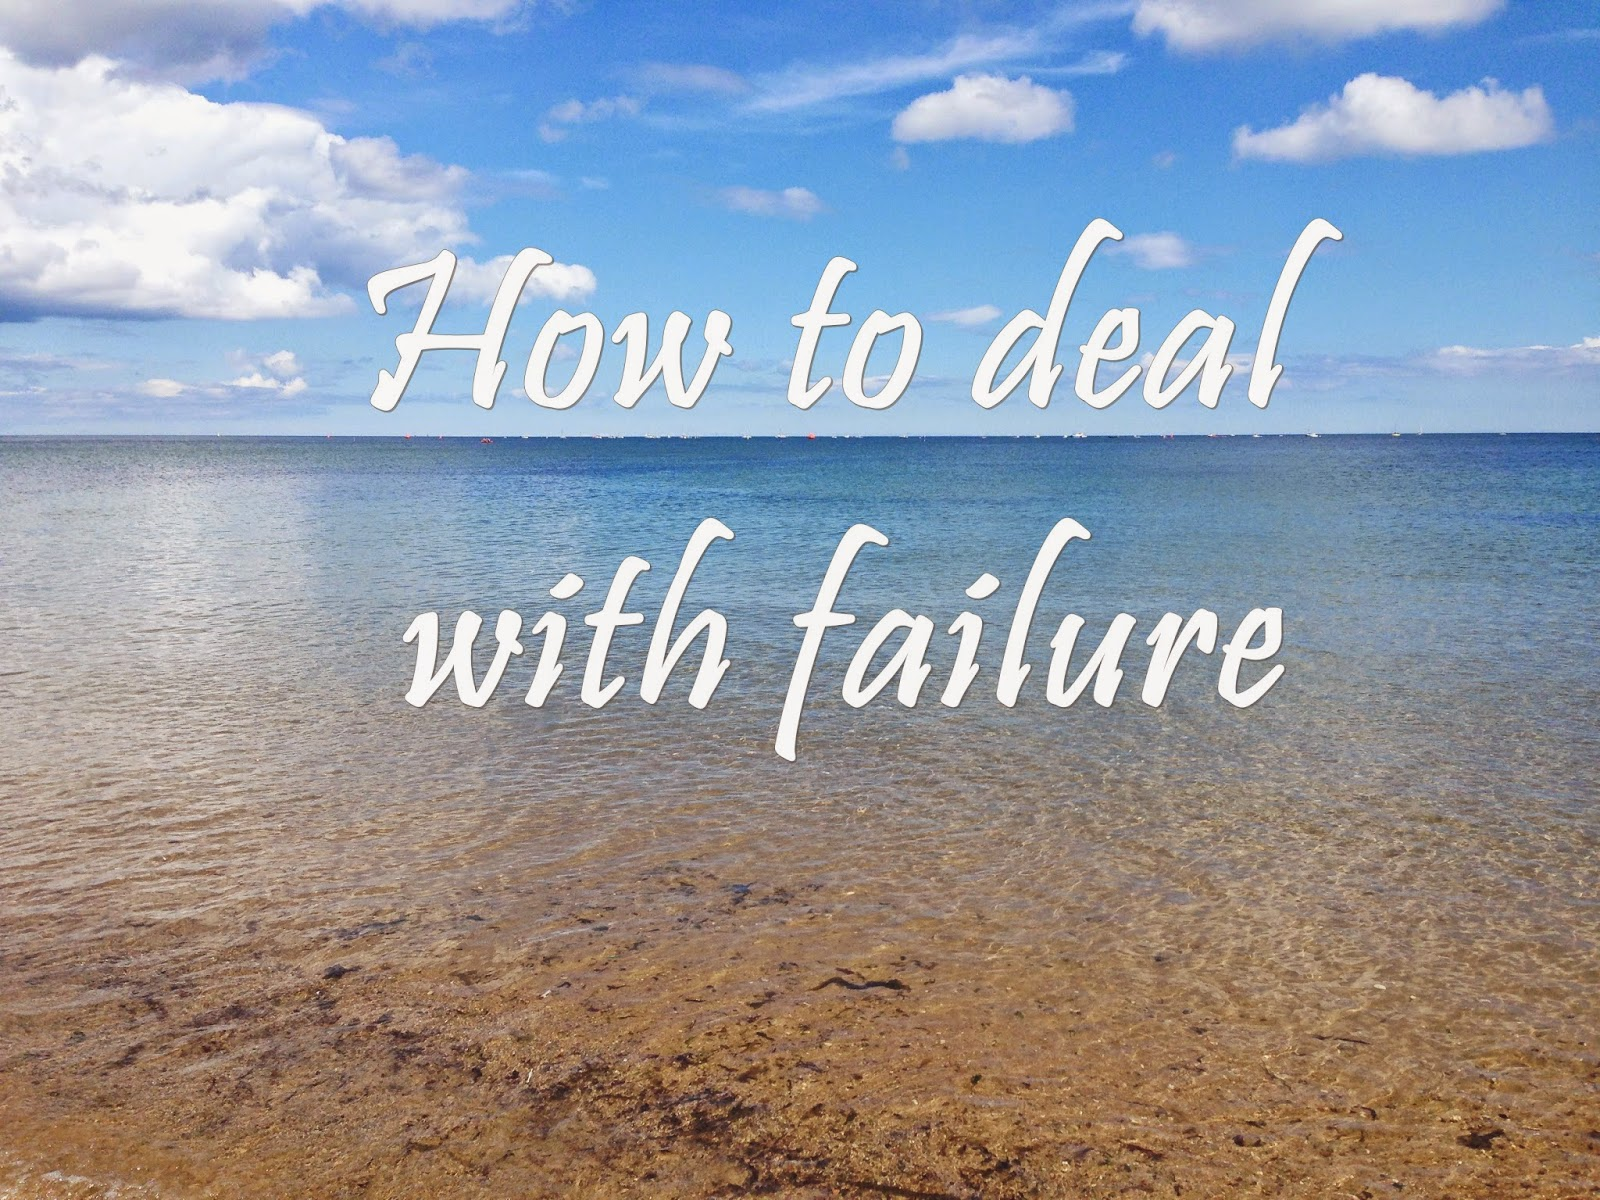 How to deal with failure - Aspiring Londoner